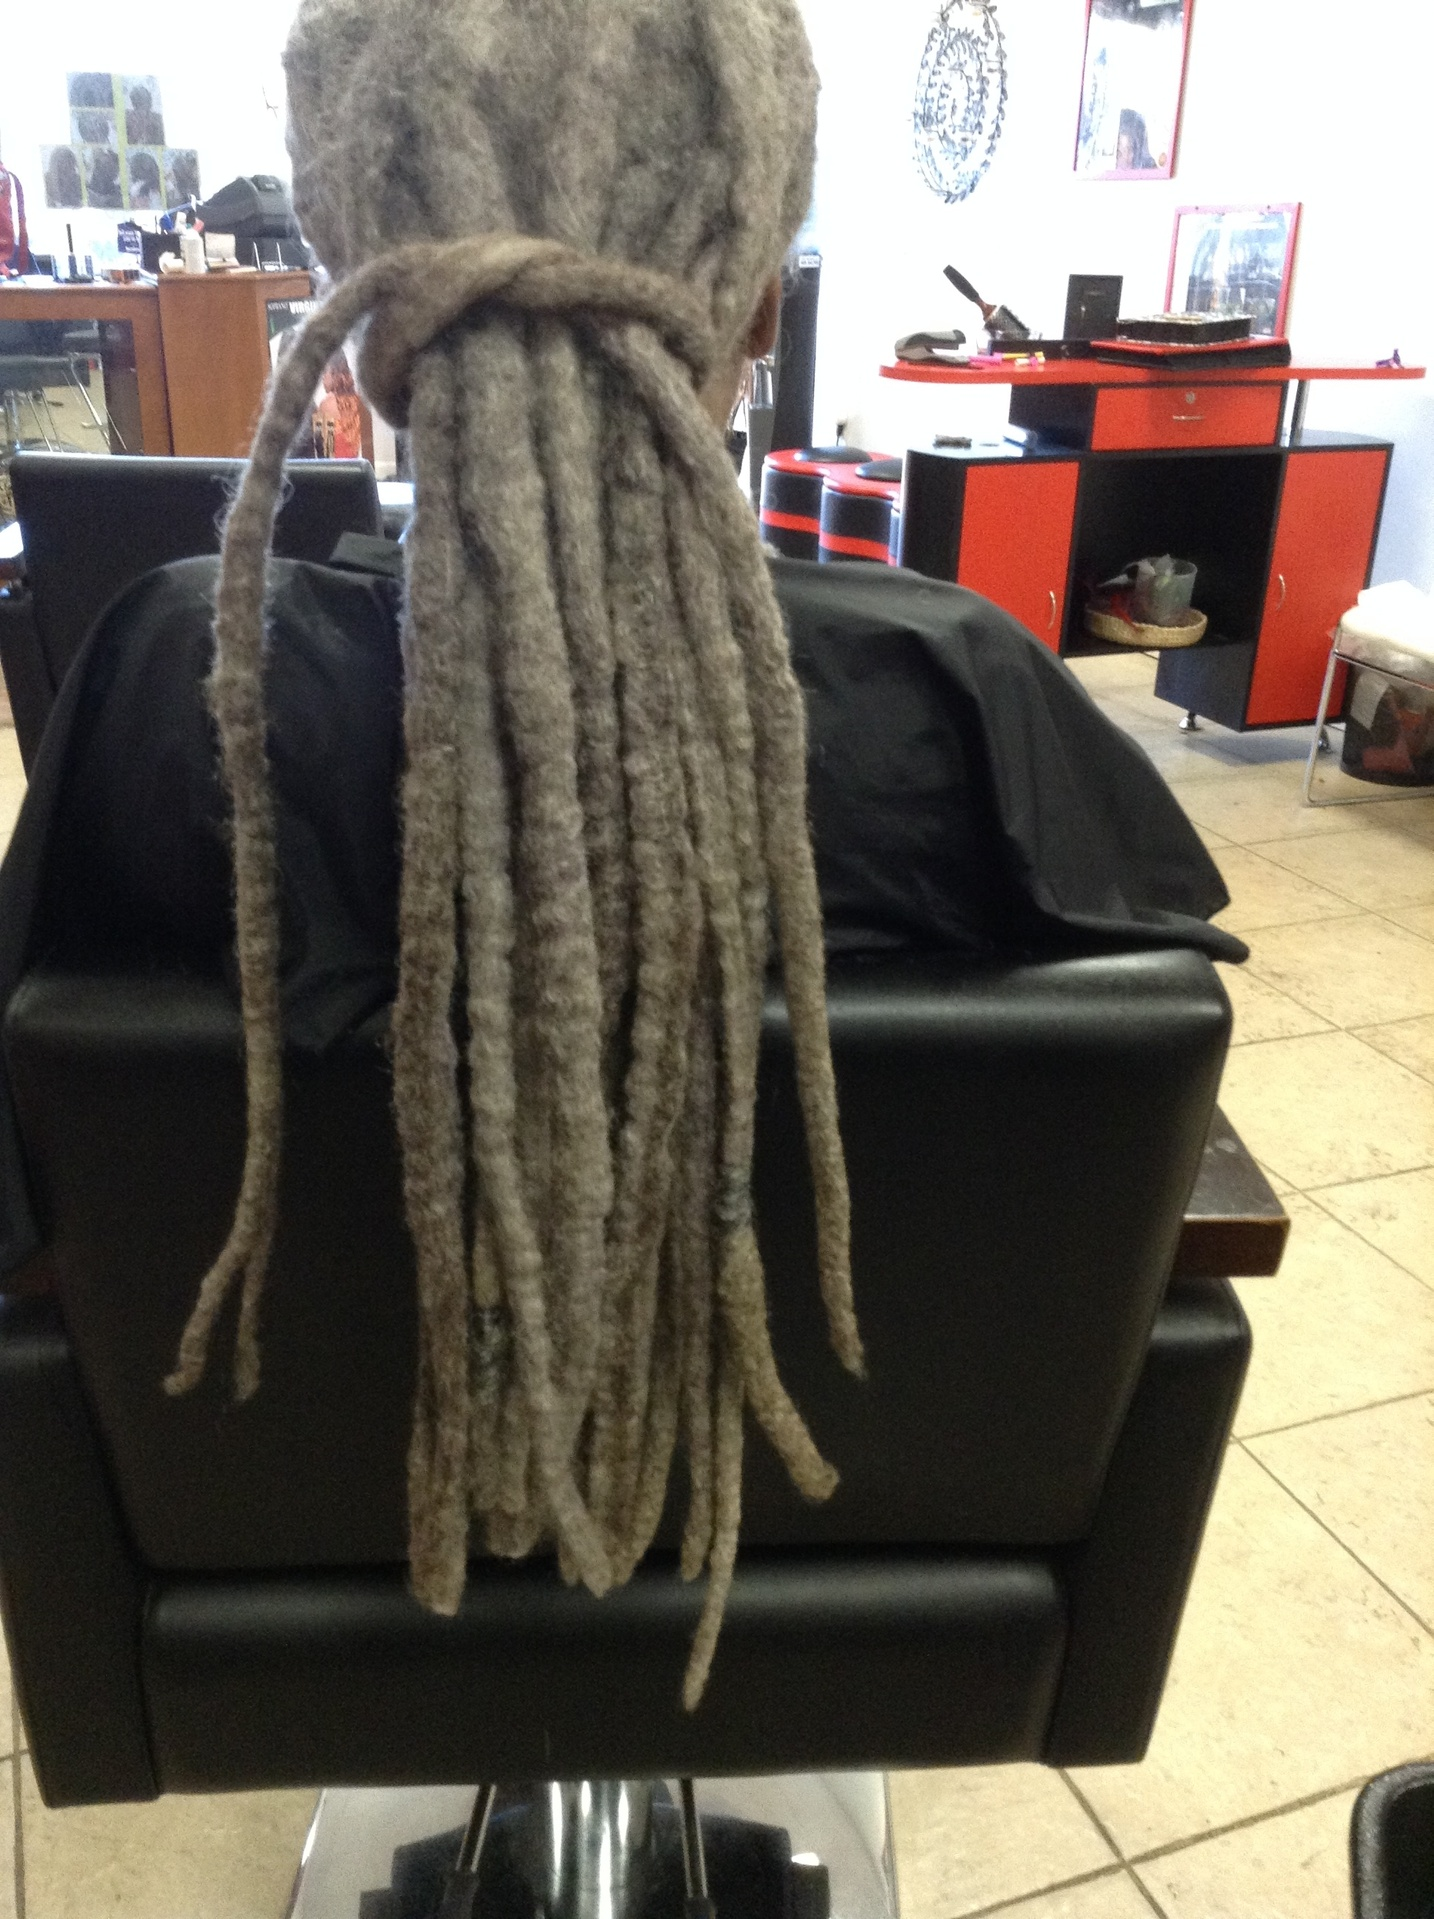 Bee shows examples after Dreadlock Hair cut